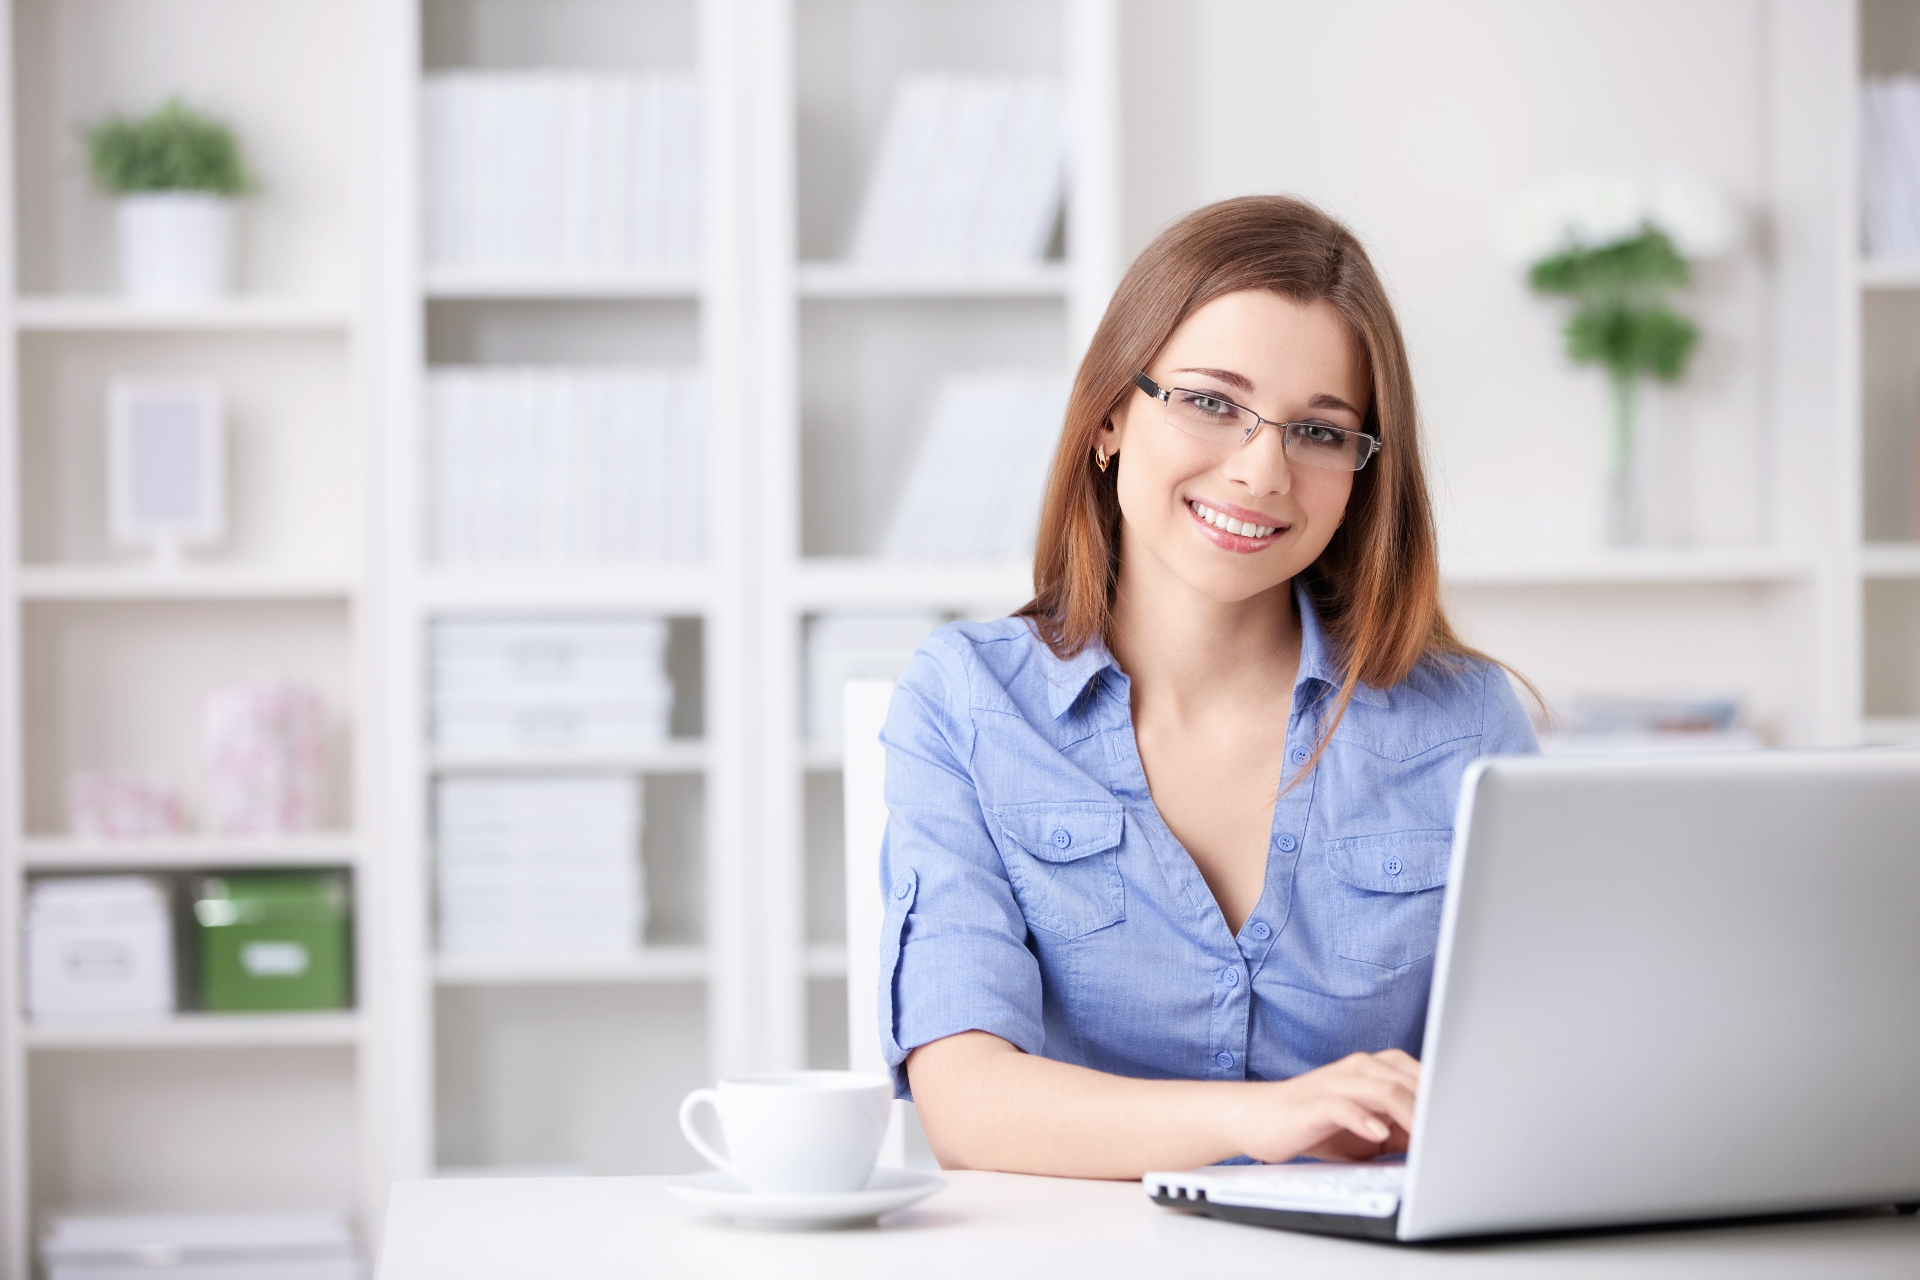 Woman on laptop smiling at the camera